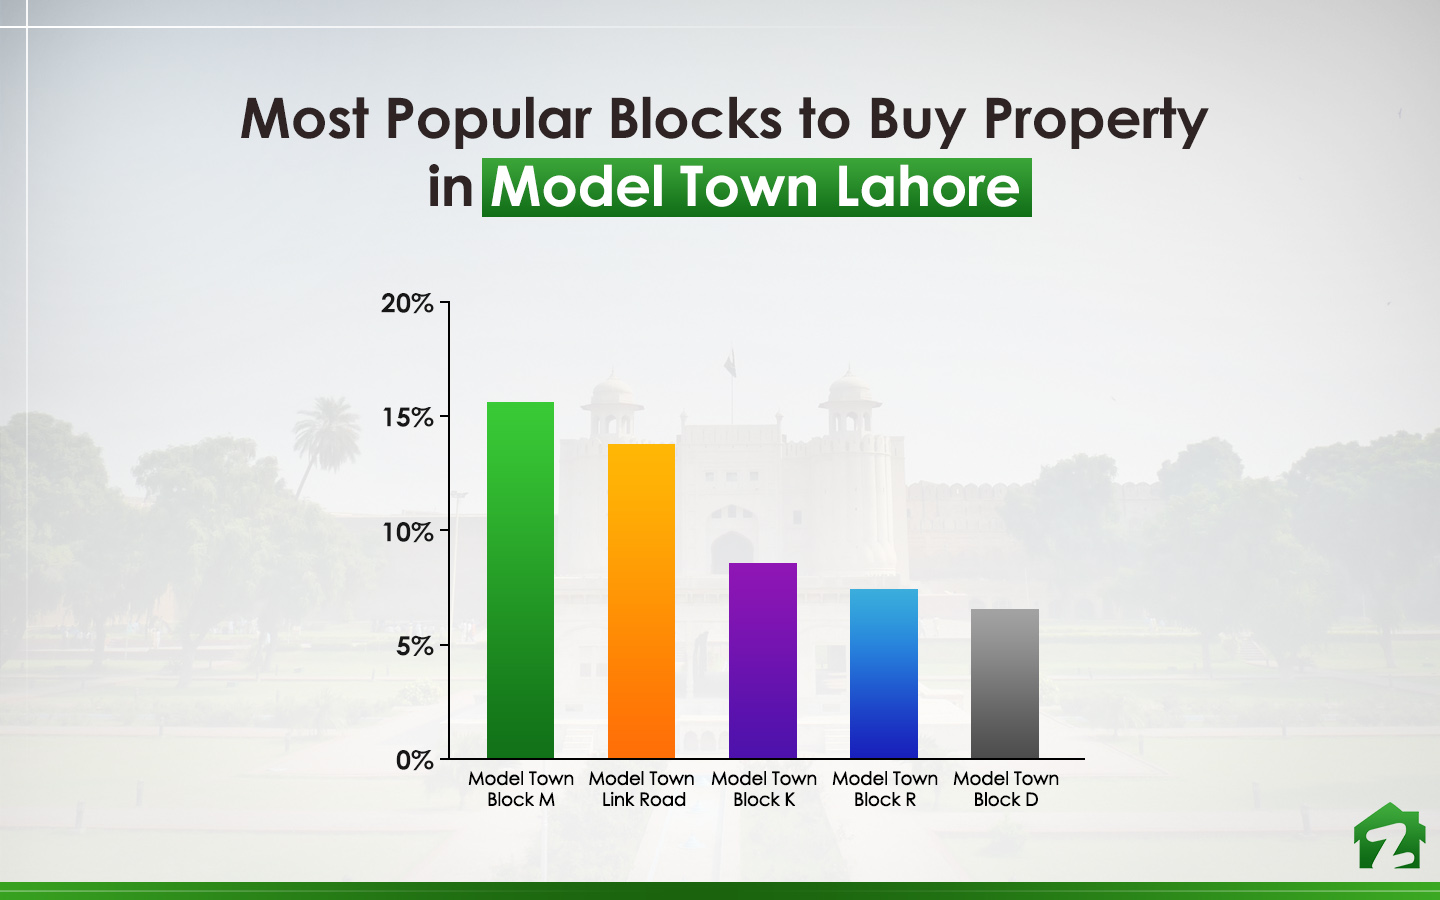 Popular Blocks to Buy Property in Model Town, Lahore